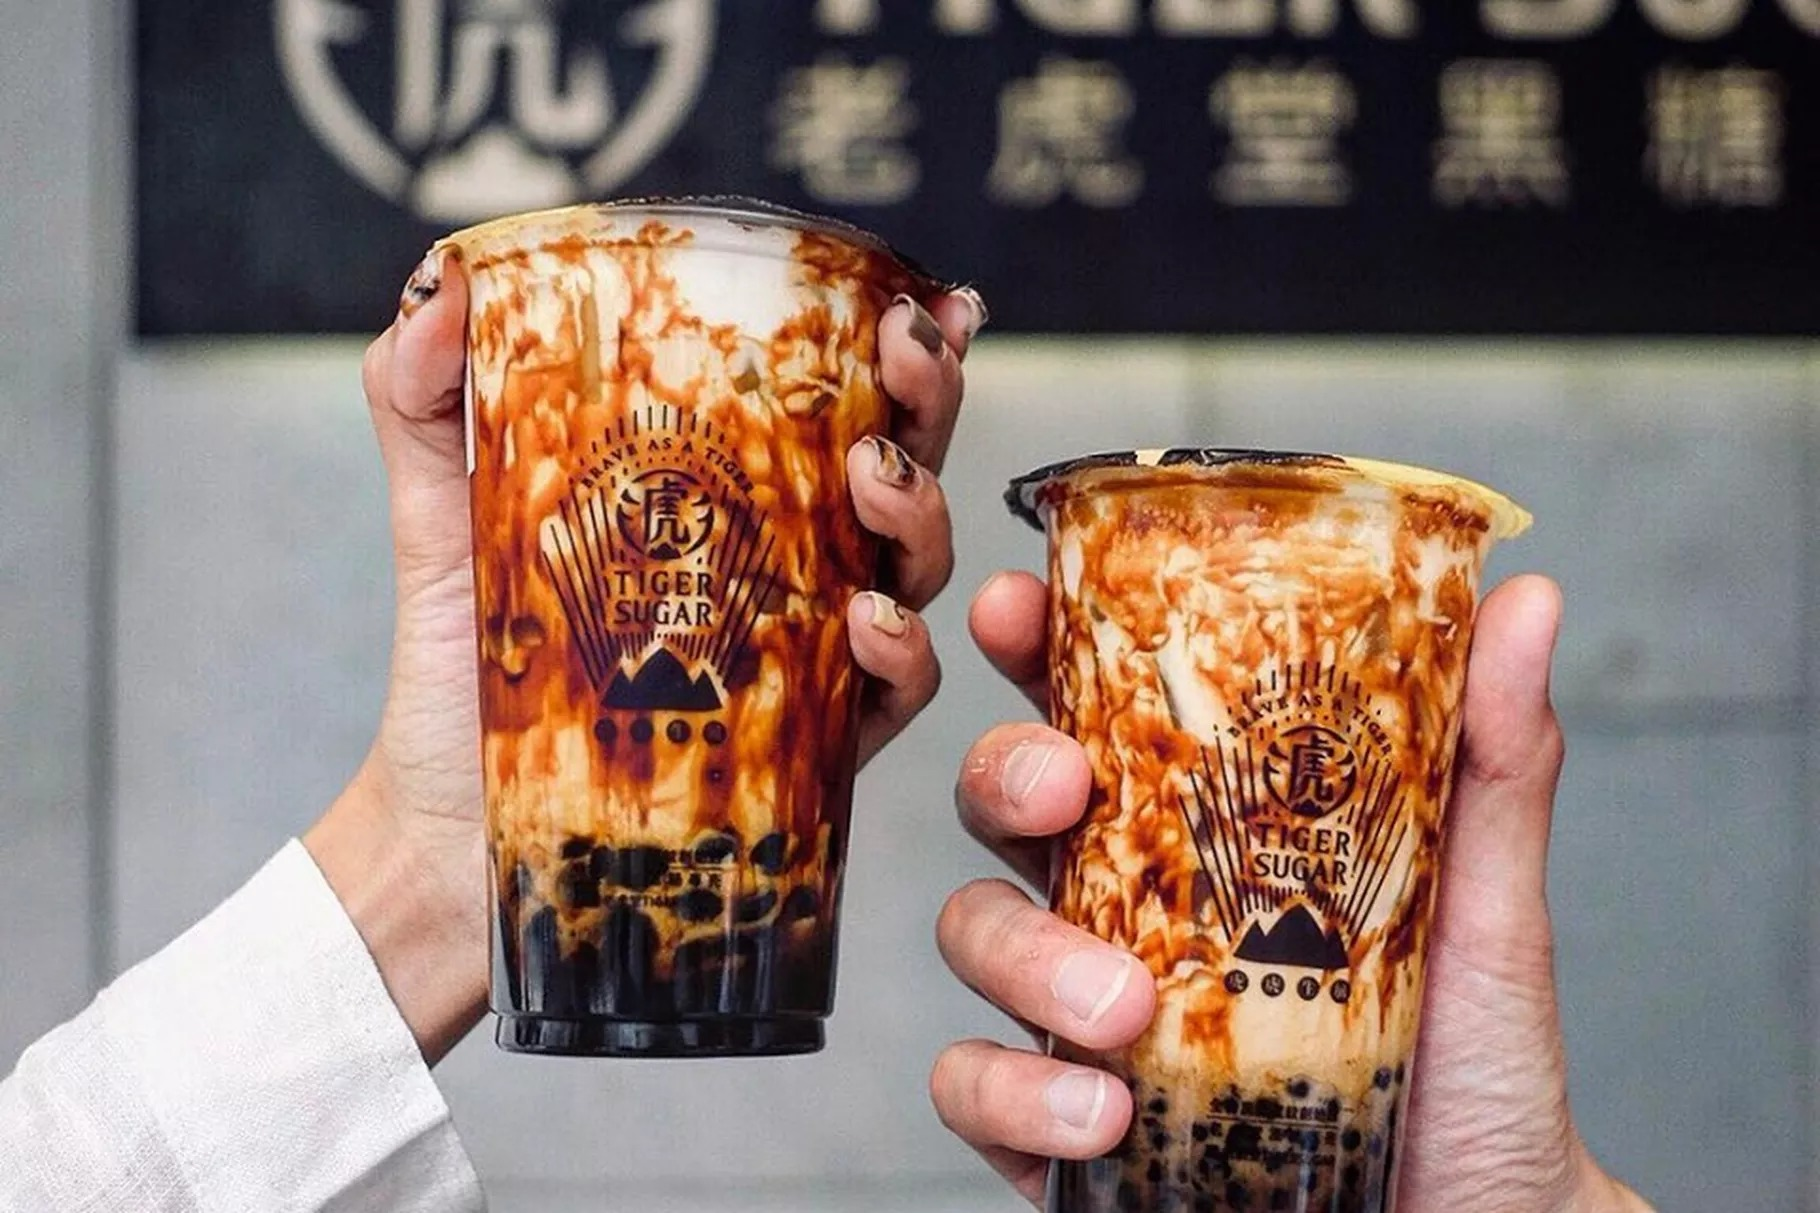 Two hands hold cups of brown sugar boba from Taiwanese chain Tiger Sugar. The iced tea drink is milky white with streaks of dark brown.